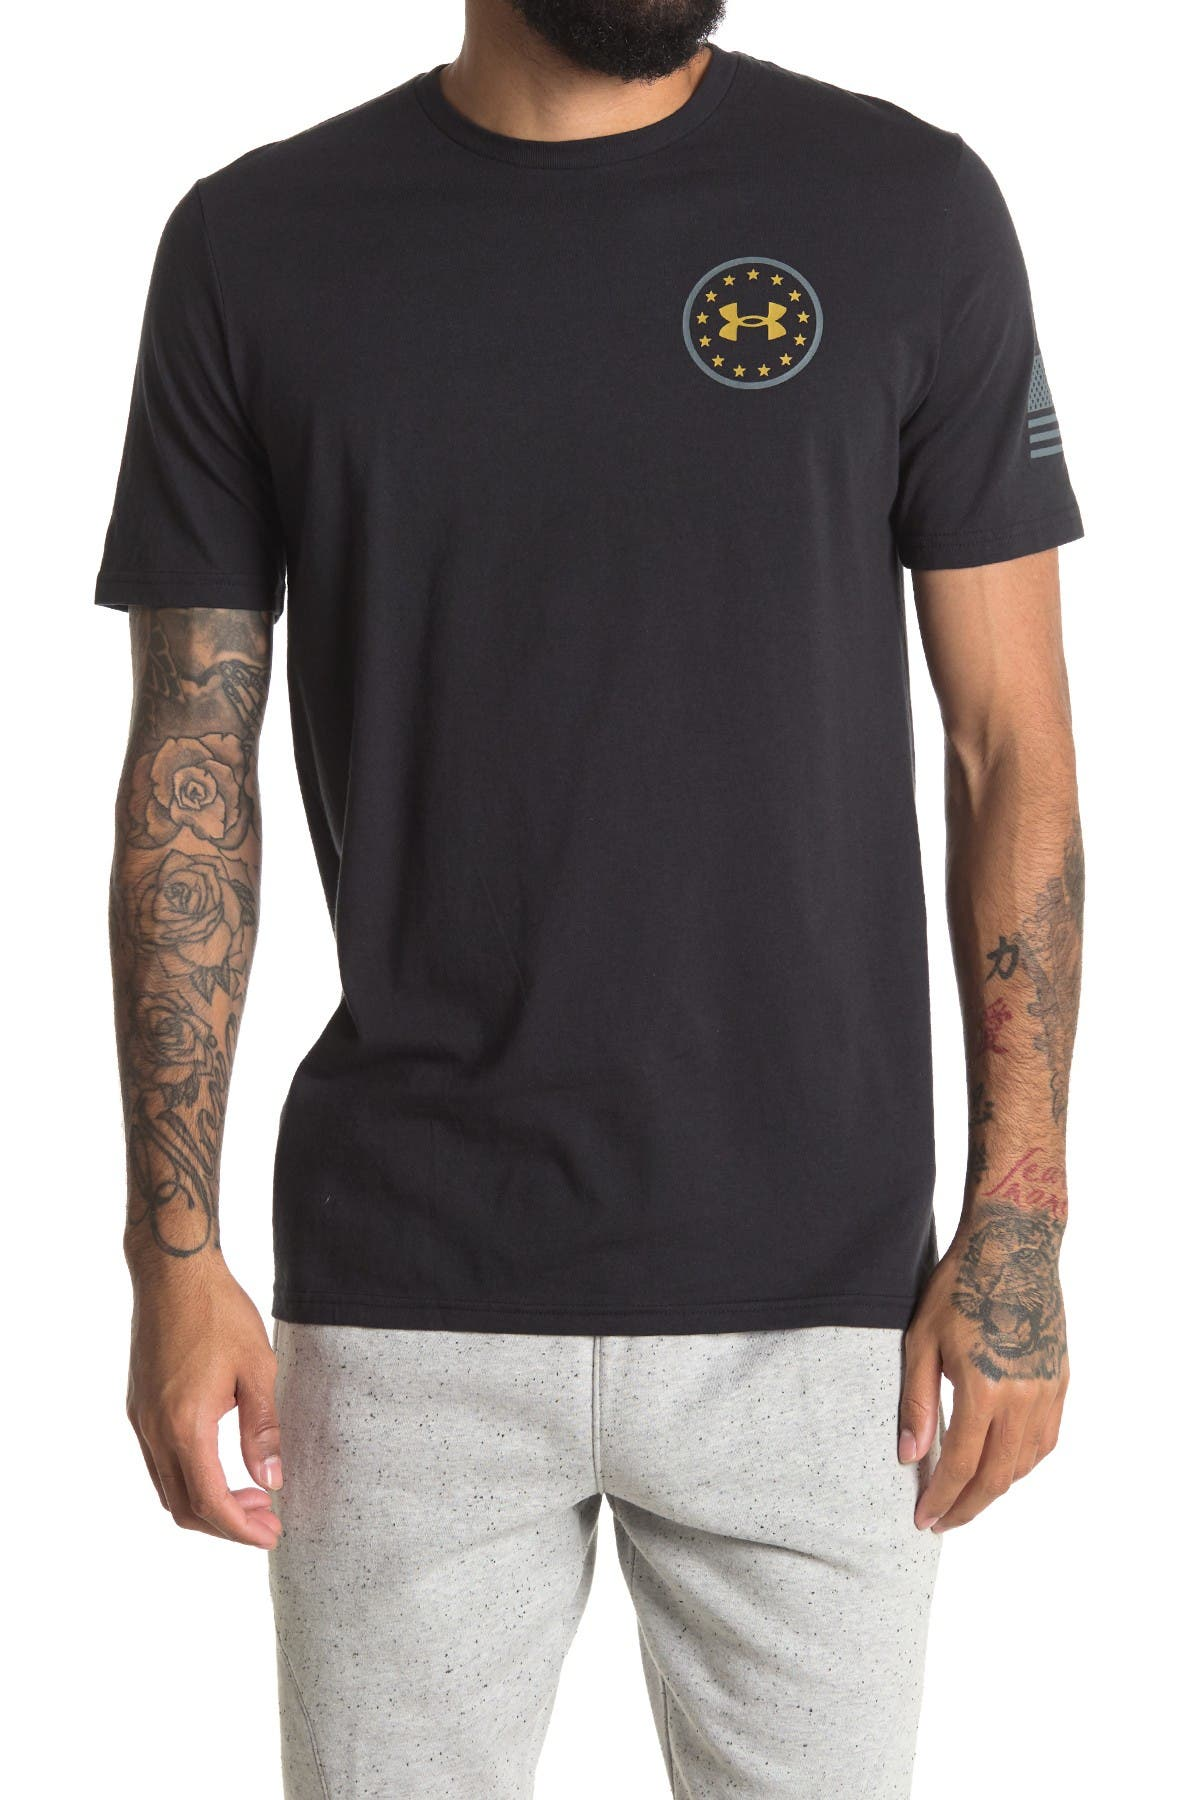 Image of Under Armour Freedom Eagle 1 Tee